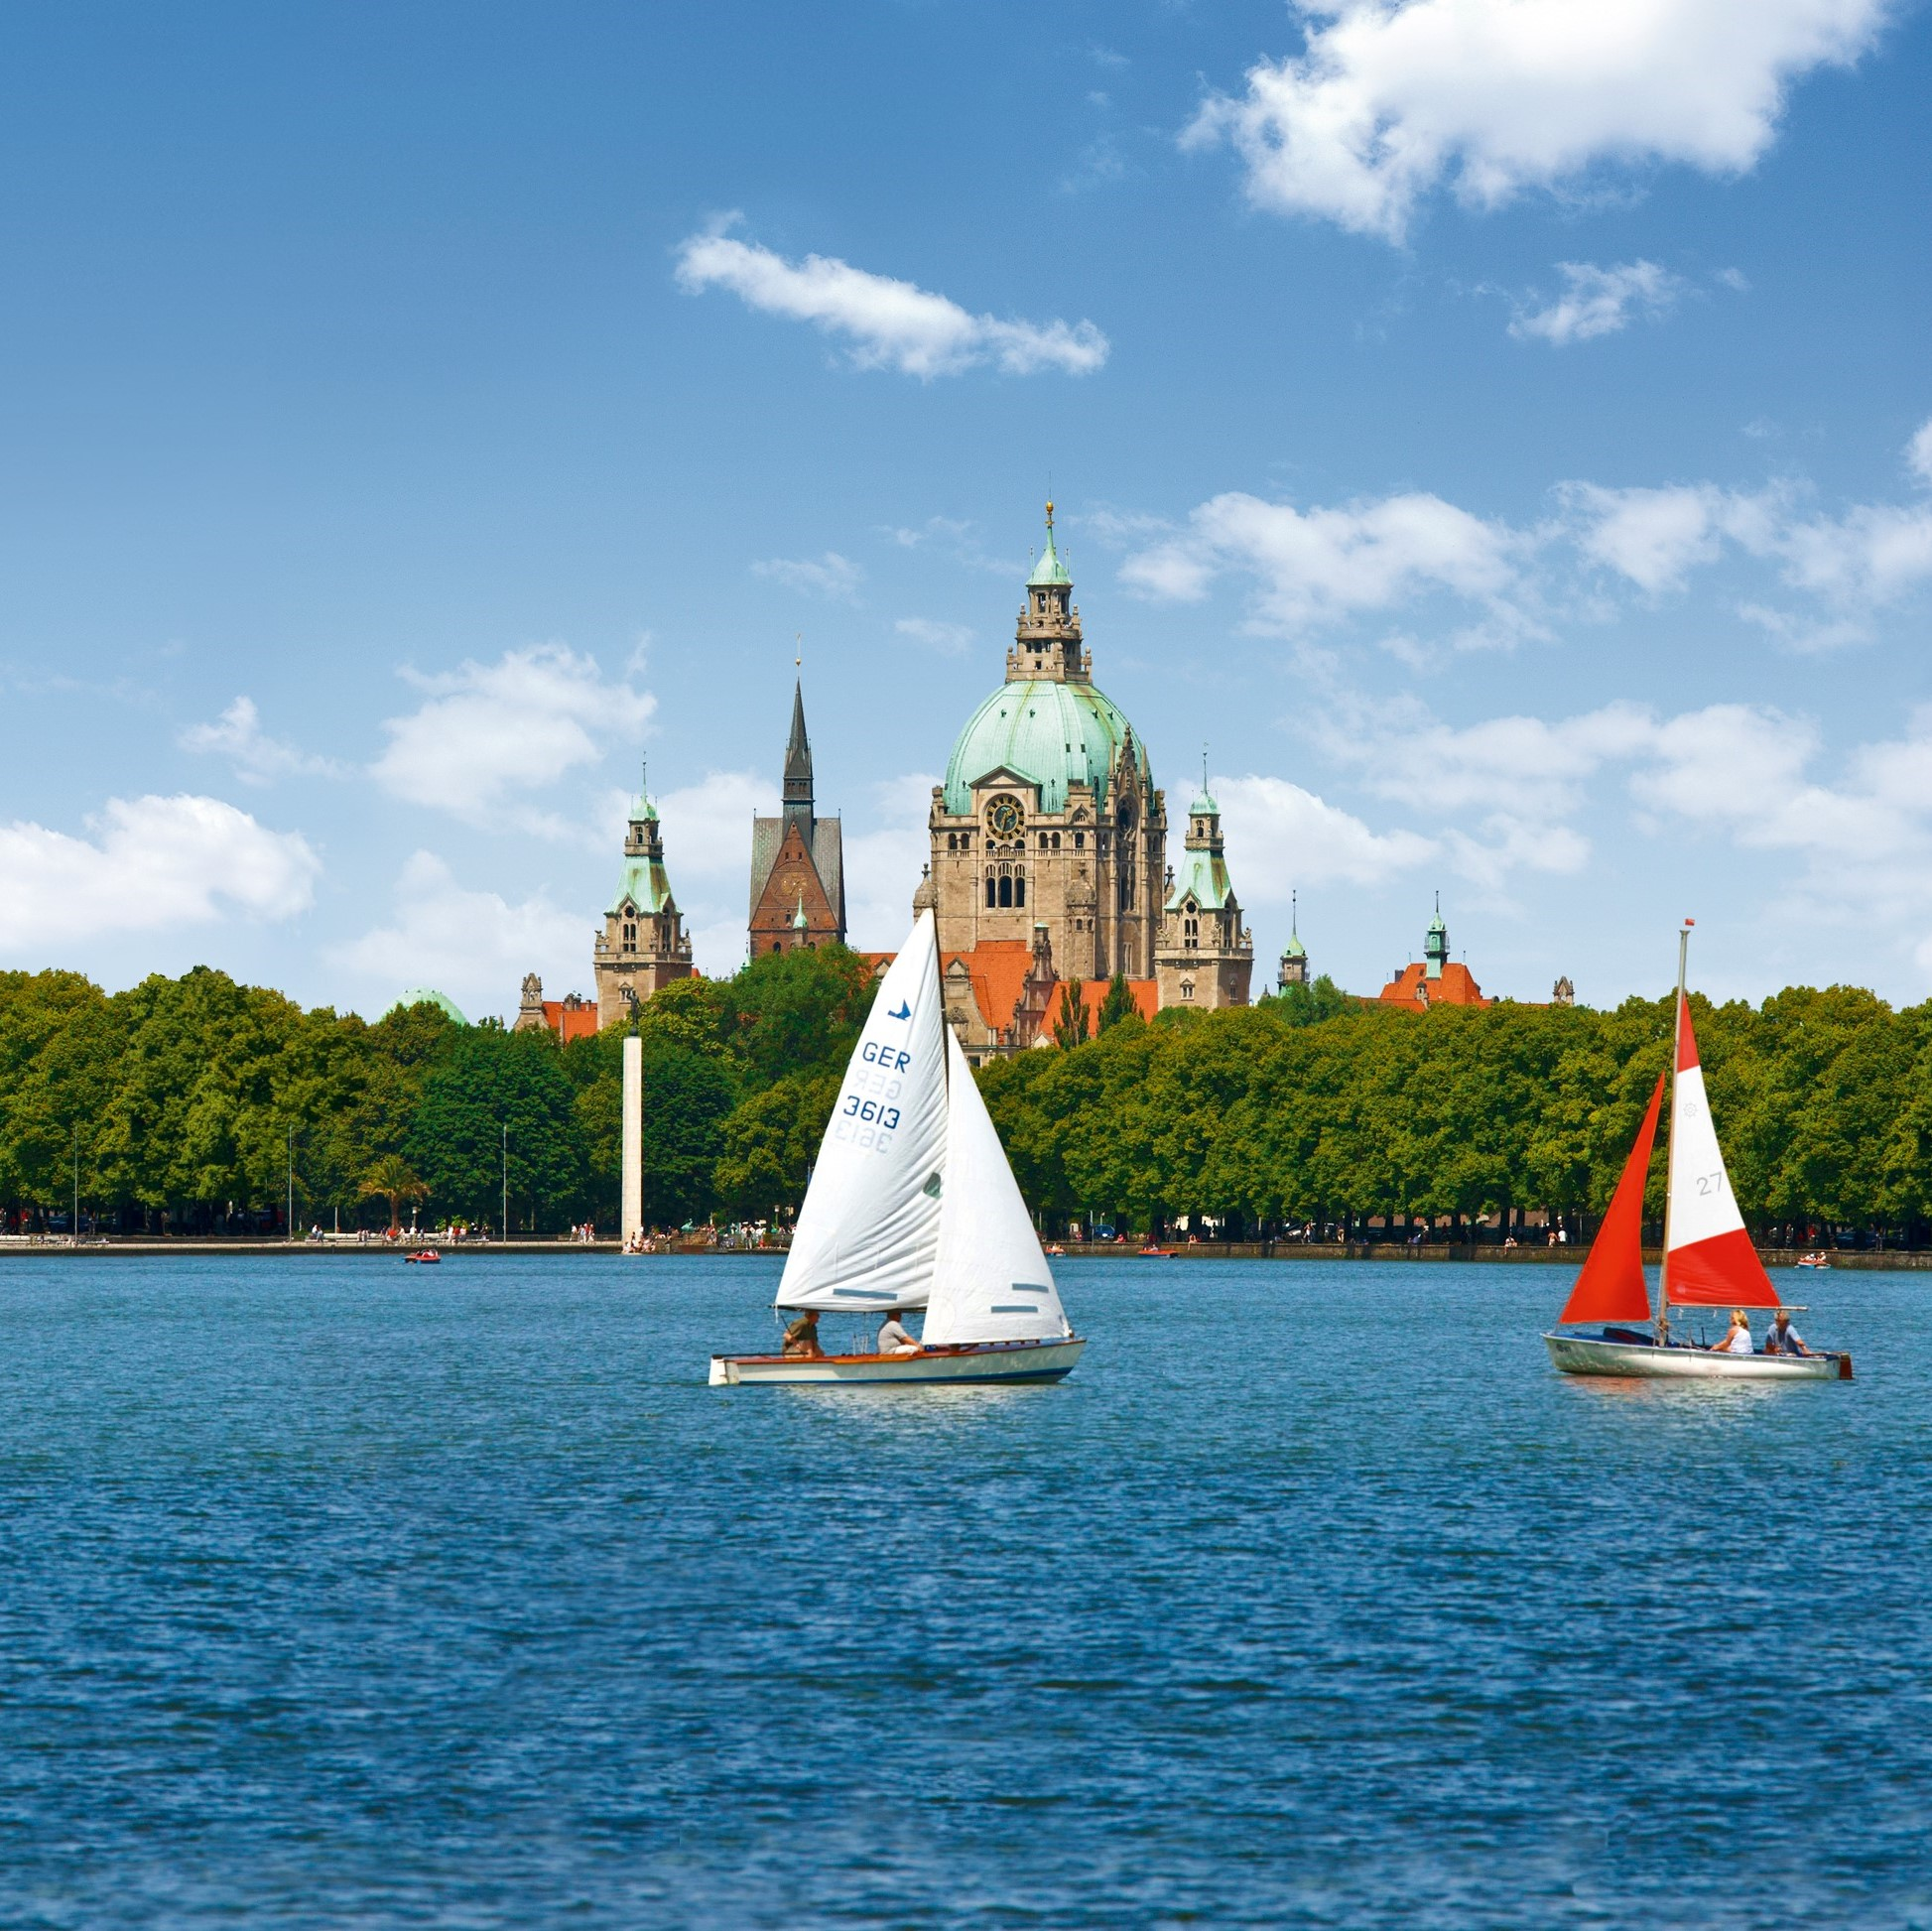 The Maschsee Lake Festival